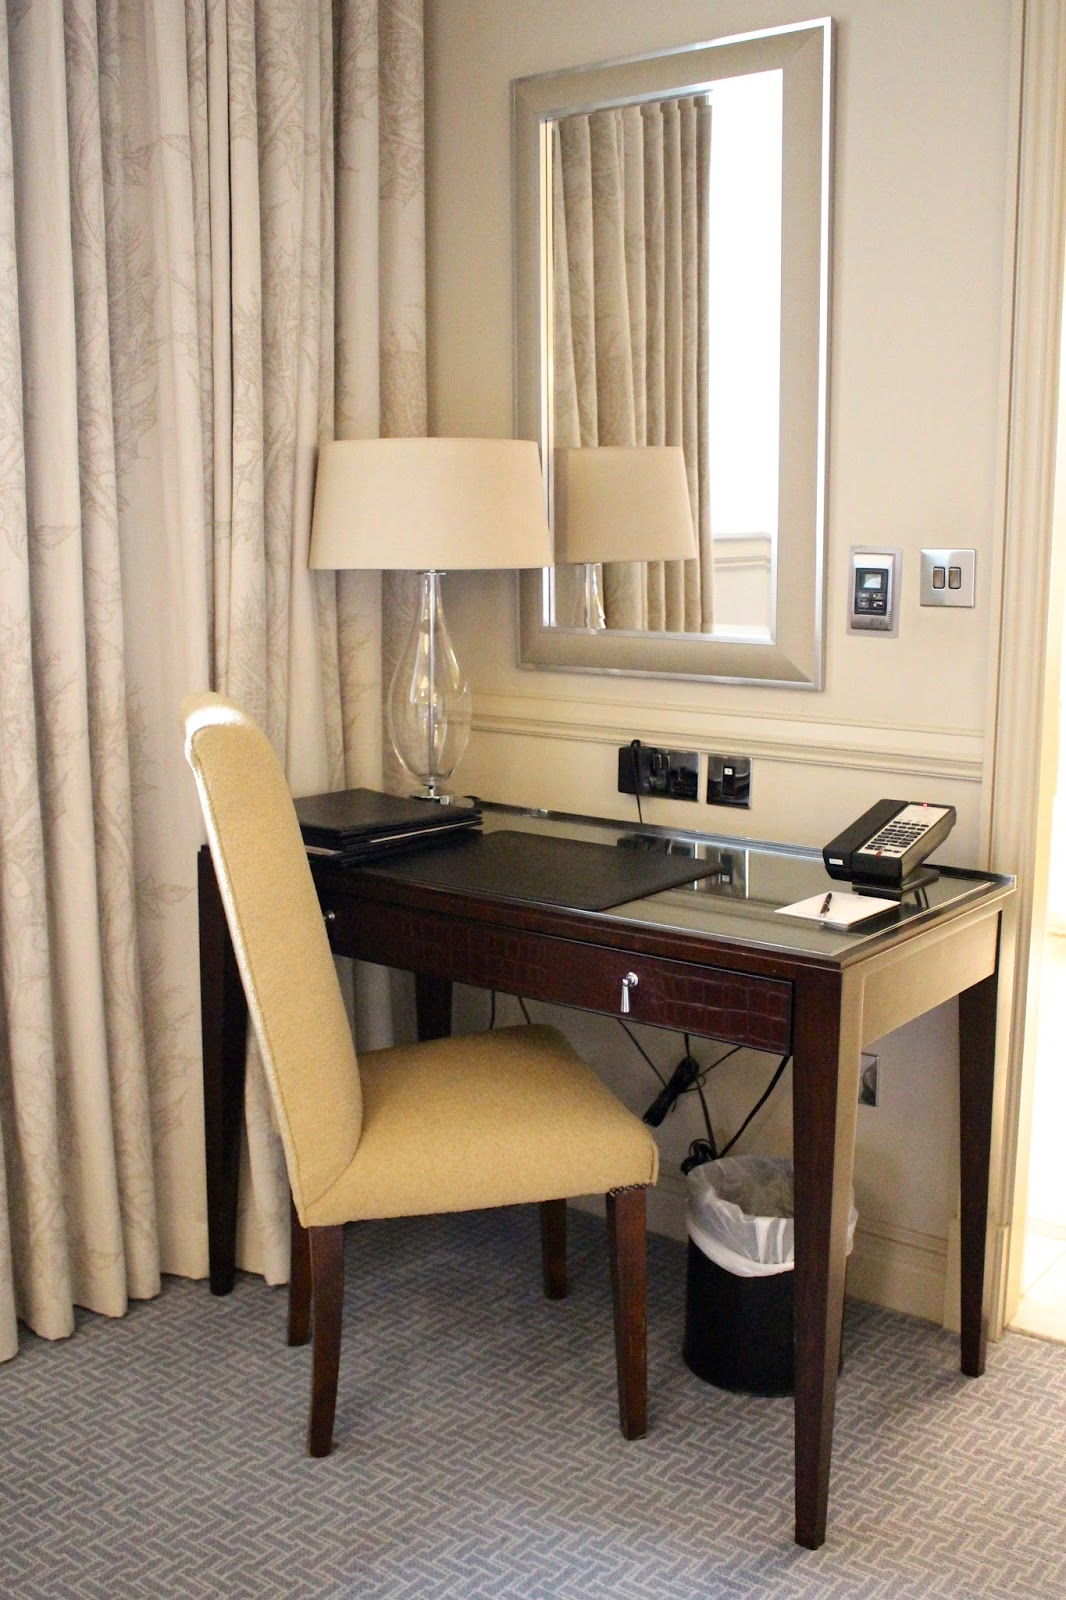 waldorf astoria edinburgh premium desk area